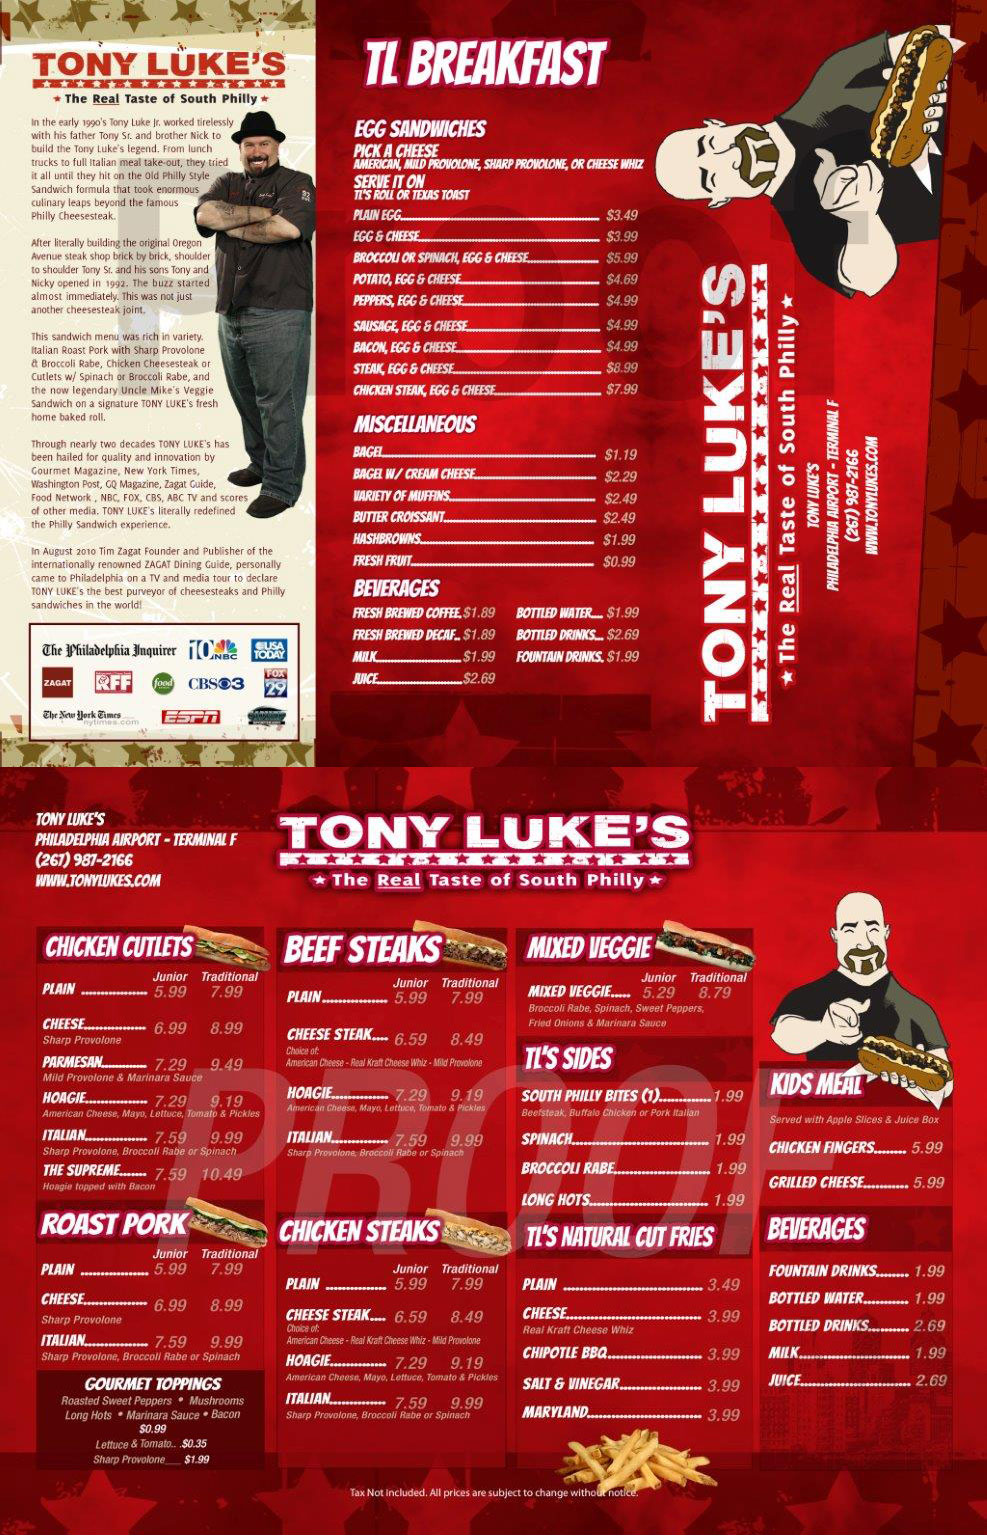 Tony Luke's at Philadelphia International Airport Terminal F